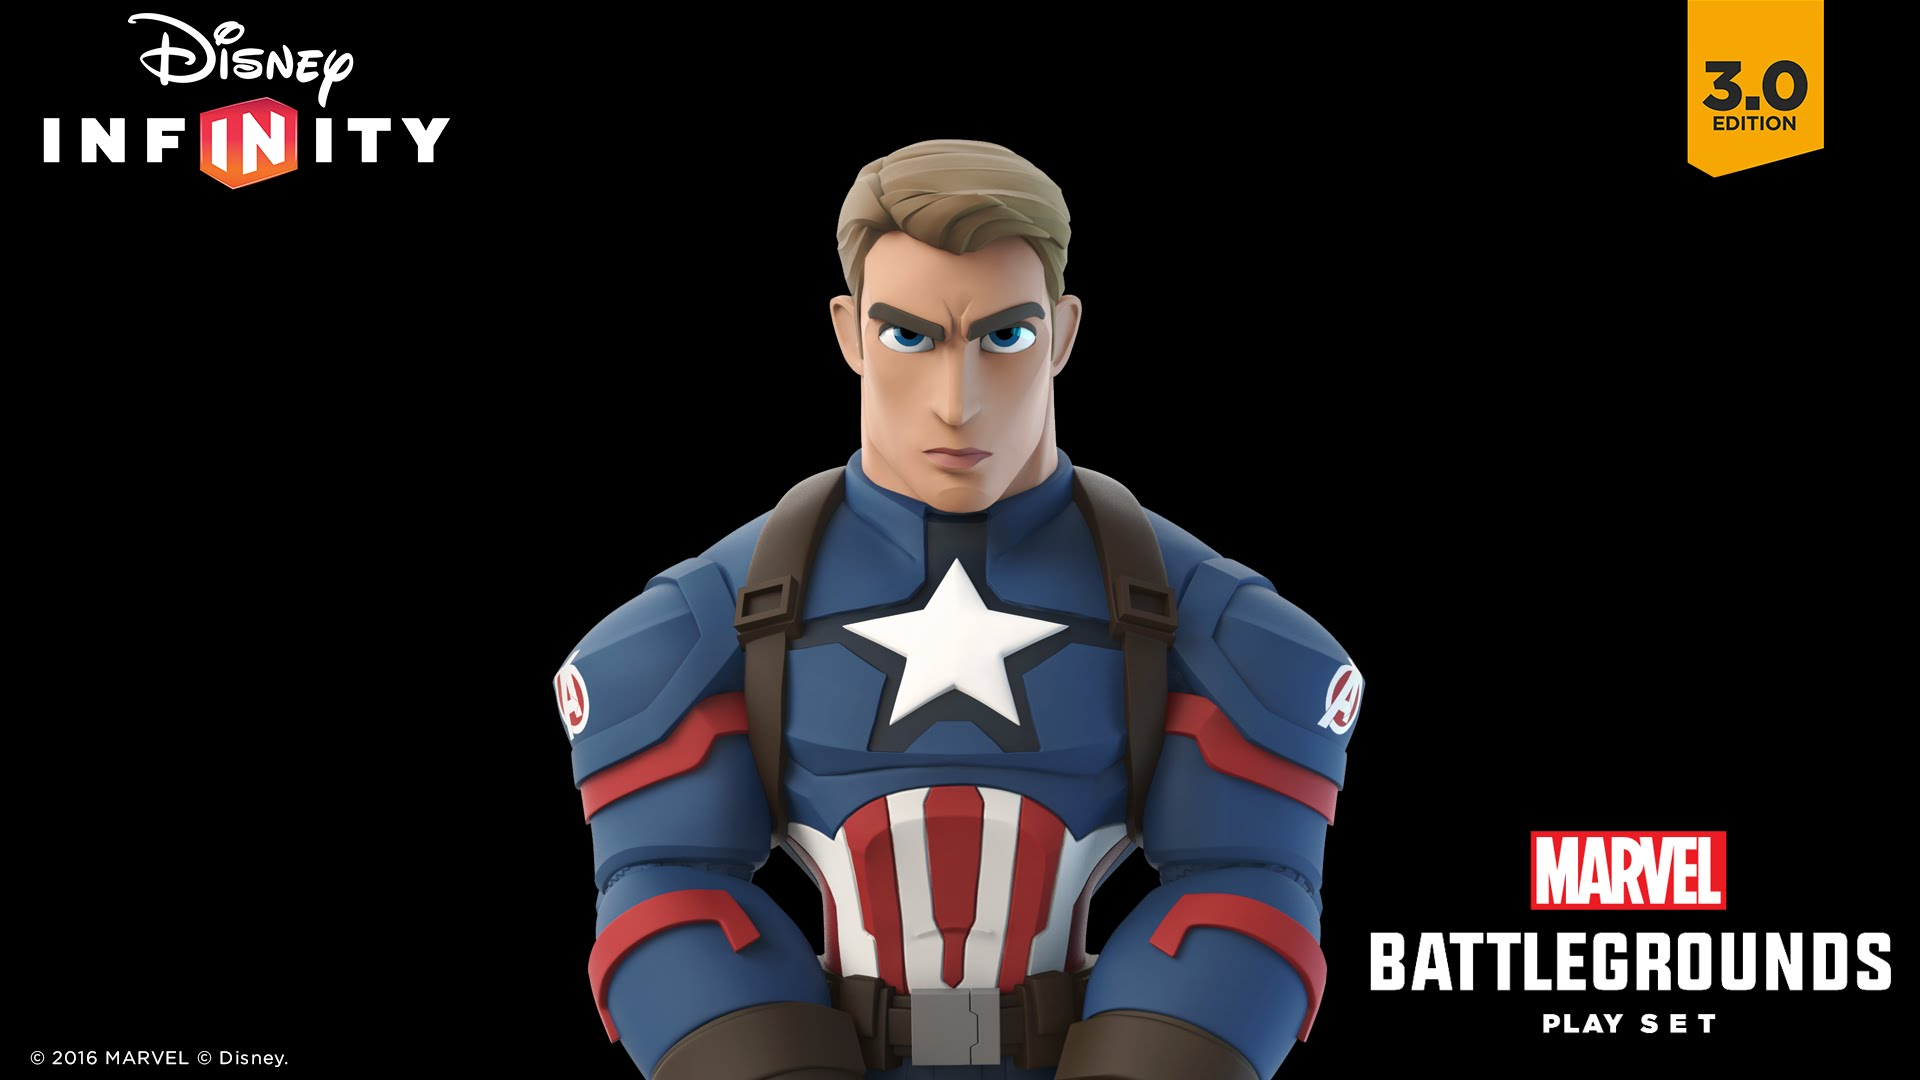 Marvel Battlegrounds Play Set Official Launch Trailer | Disney Infinity 3.0